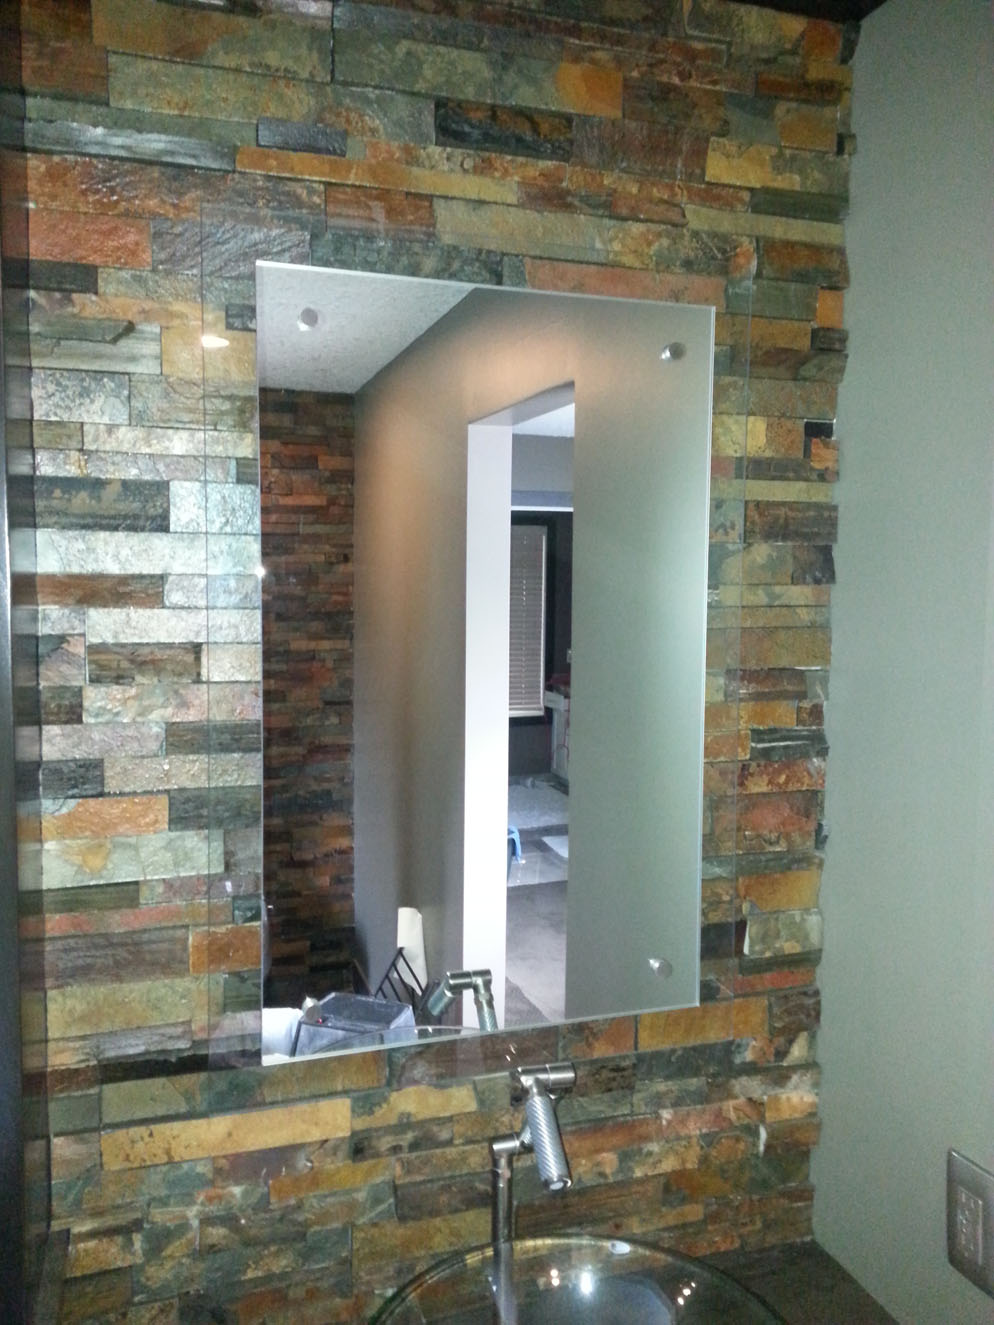 Amazing I Was Recently Needing A Large Mirror For My Bathroom  Service And Prices For Over 70 Years, Minneapolis Glass Company Has Been A Destination For Homeowners,contractors And Business Alike Looking For High Quality Glass Design